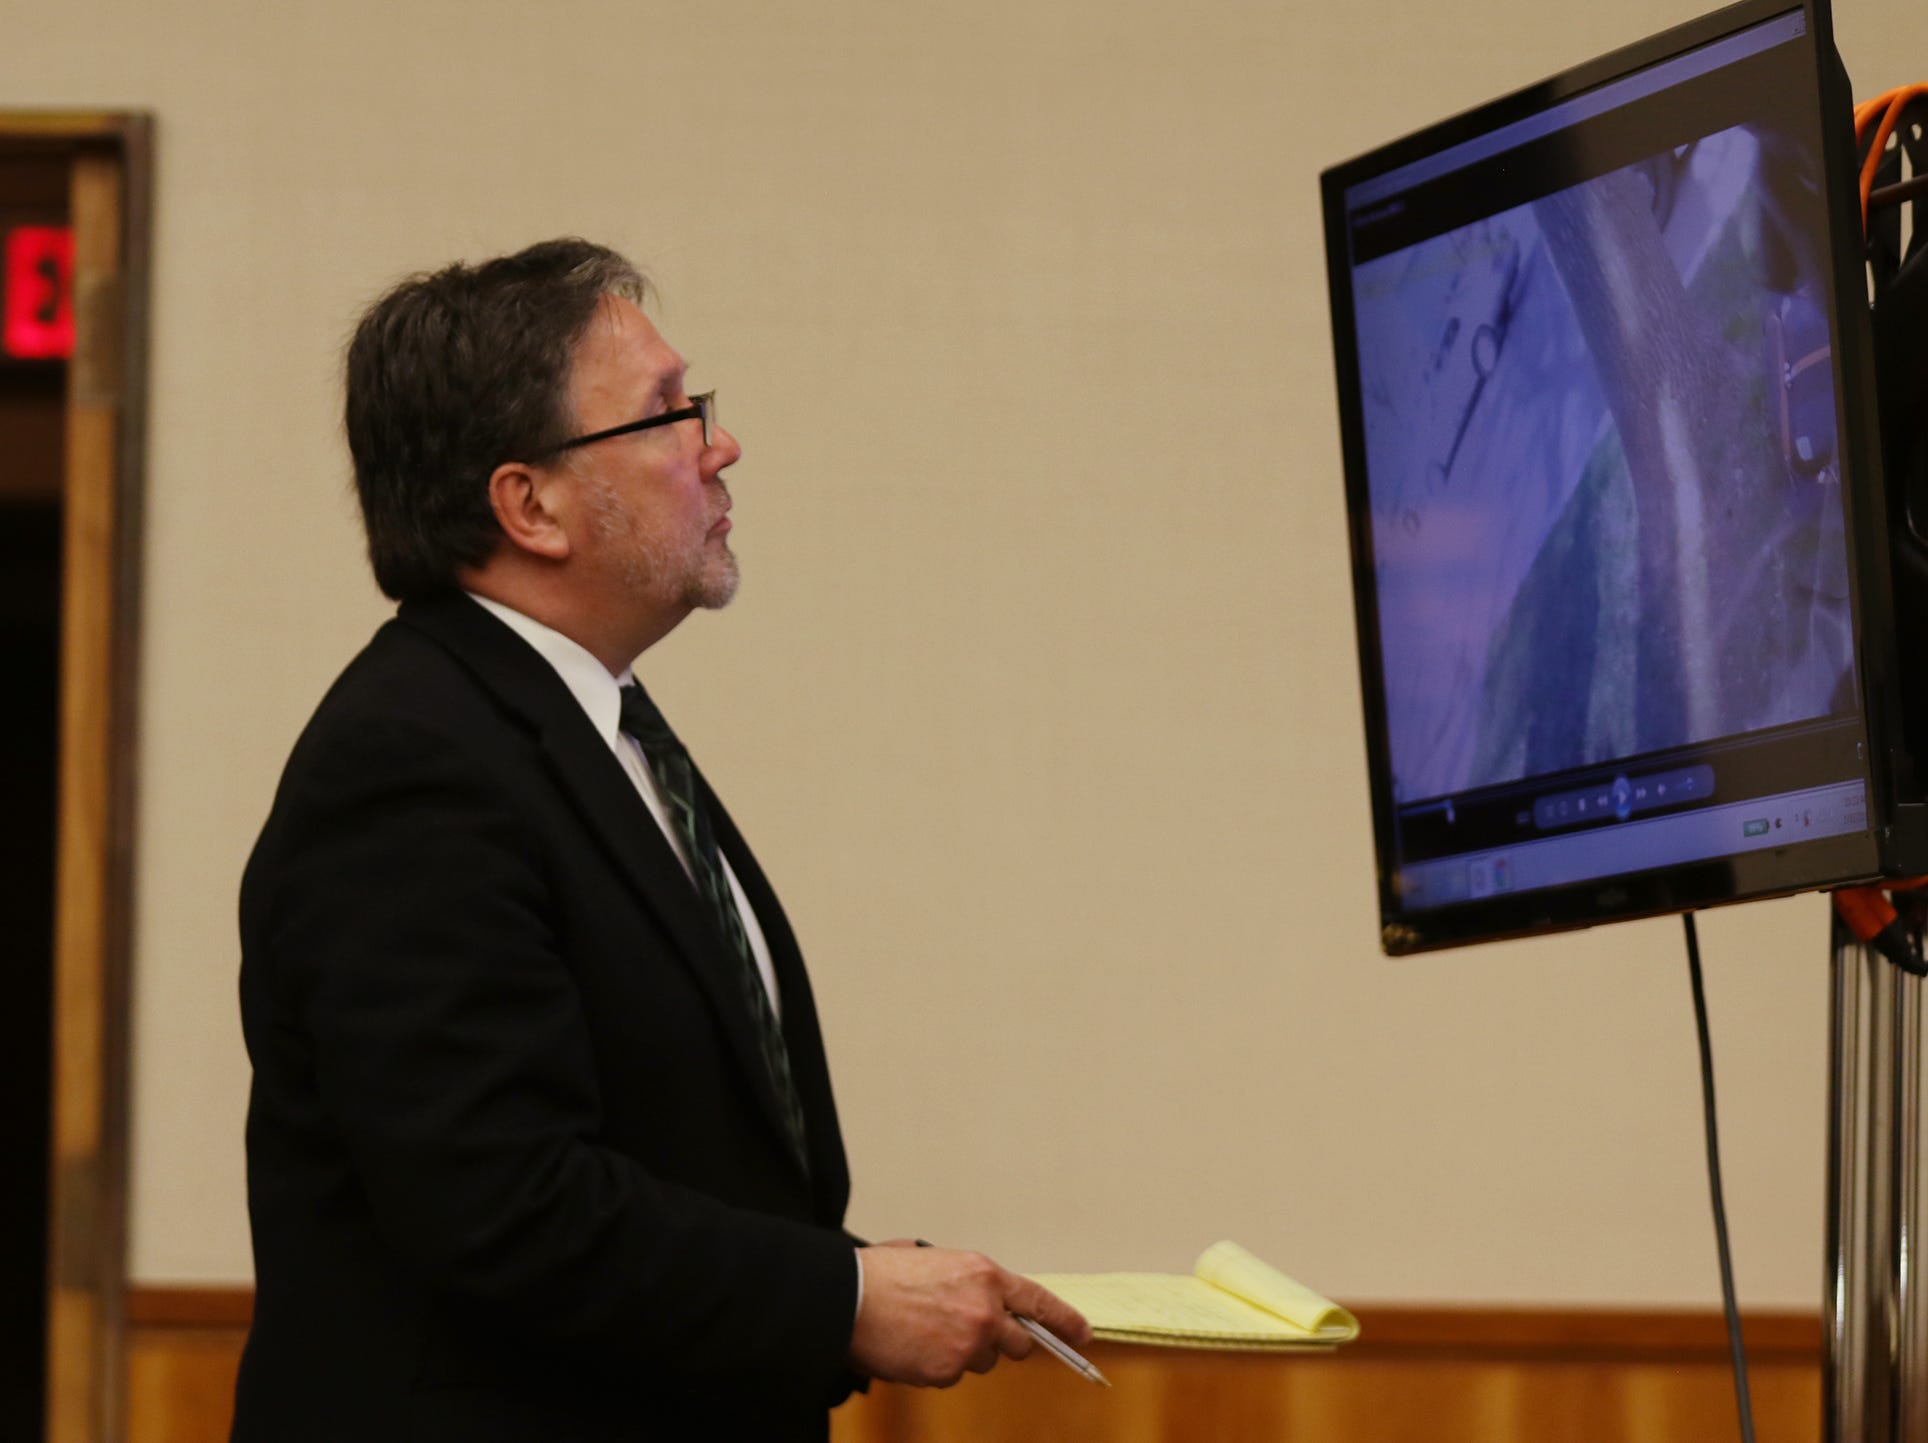 Defense attorney Clark Zimmermann looks for a time stamp on a video for scenes he objected to.